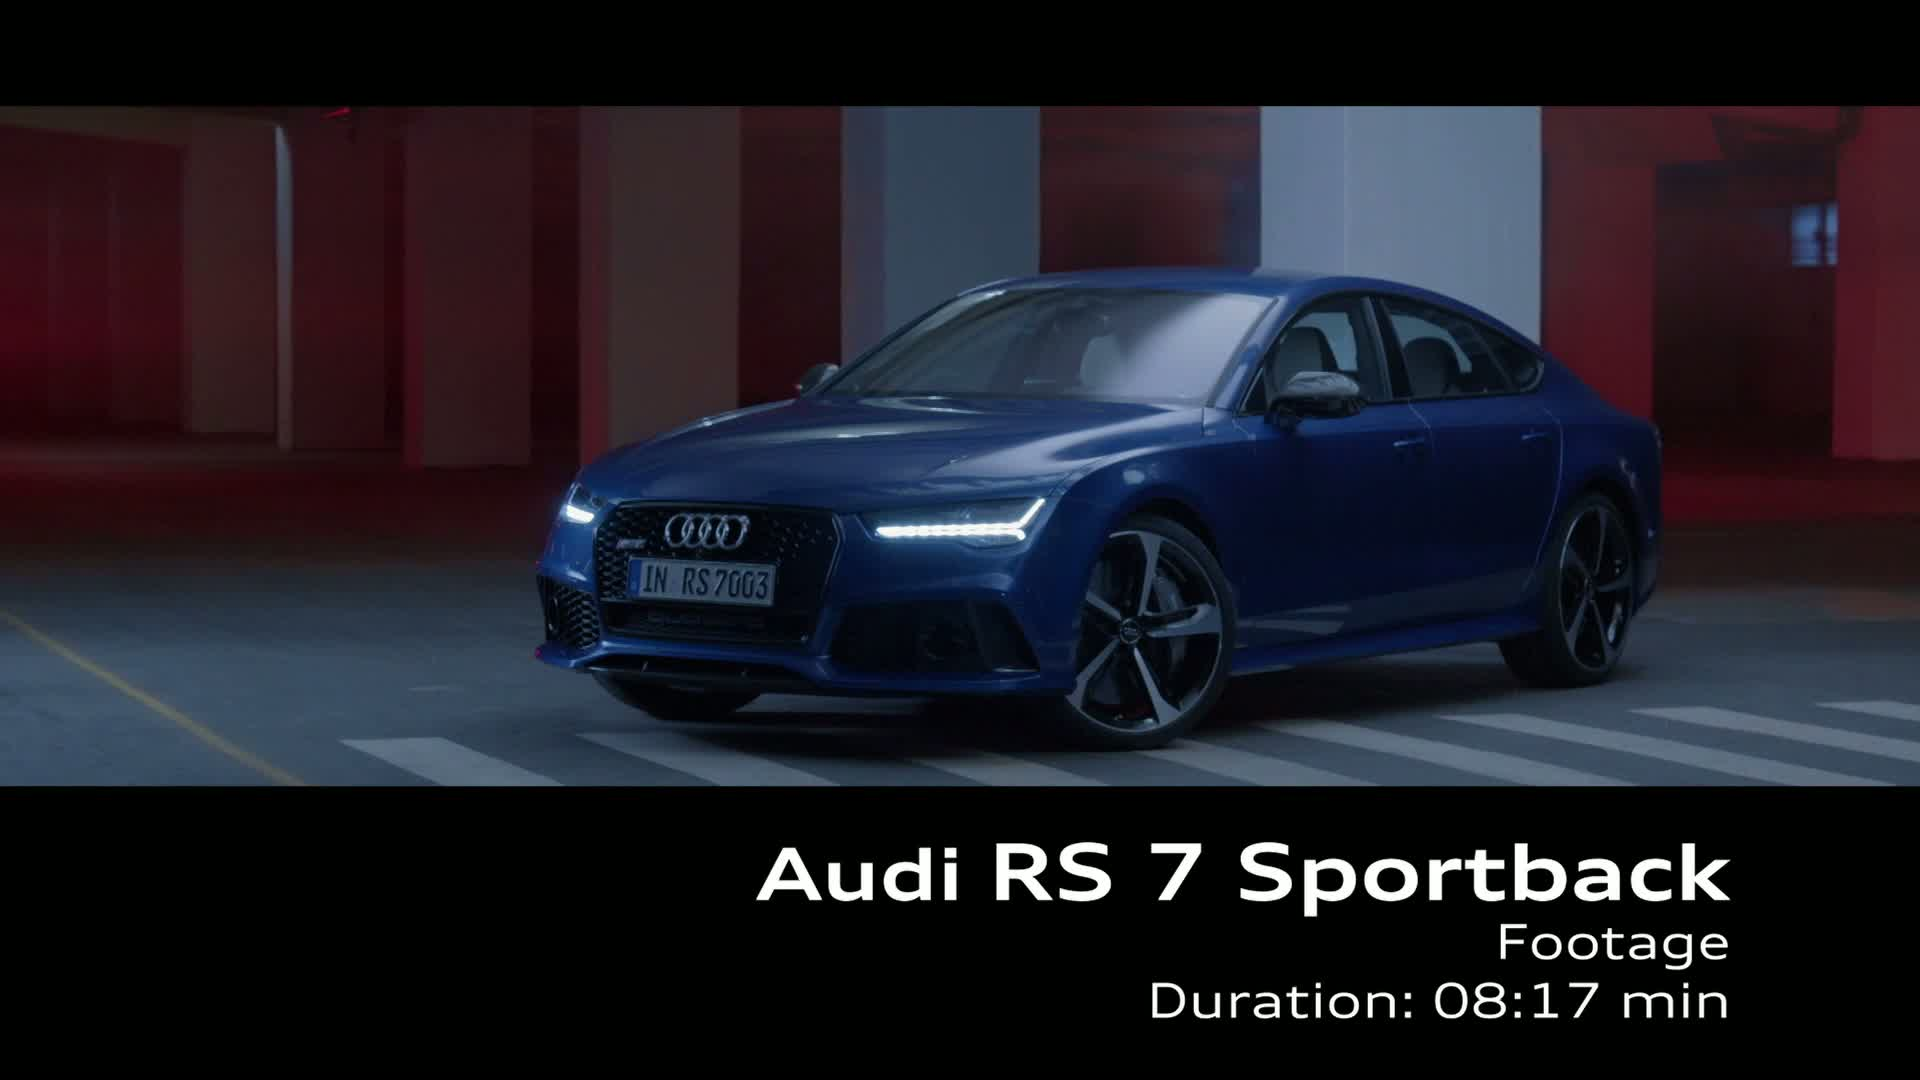 Even more defined: The revised Audi RS 7 Sportback - Footage